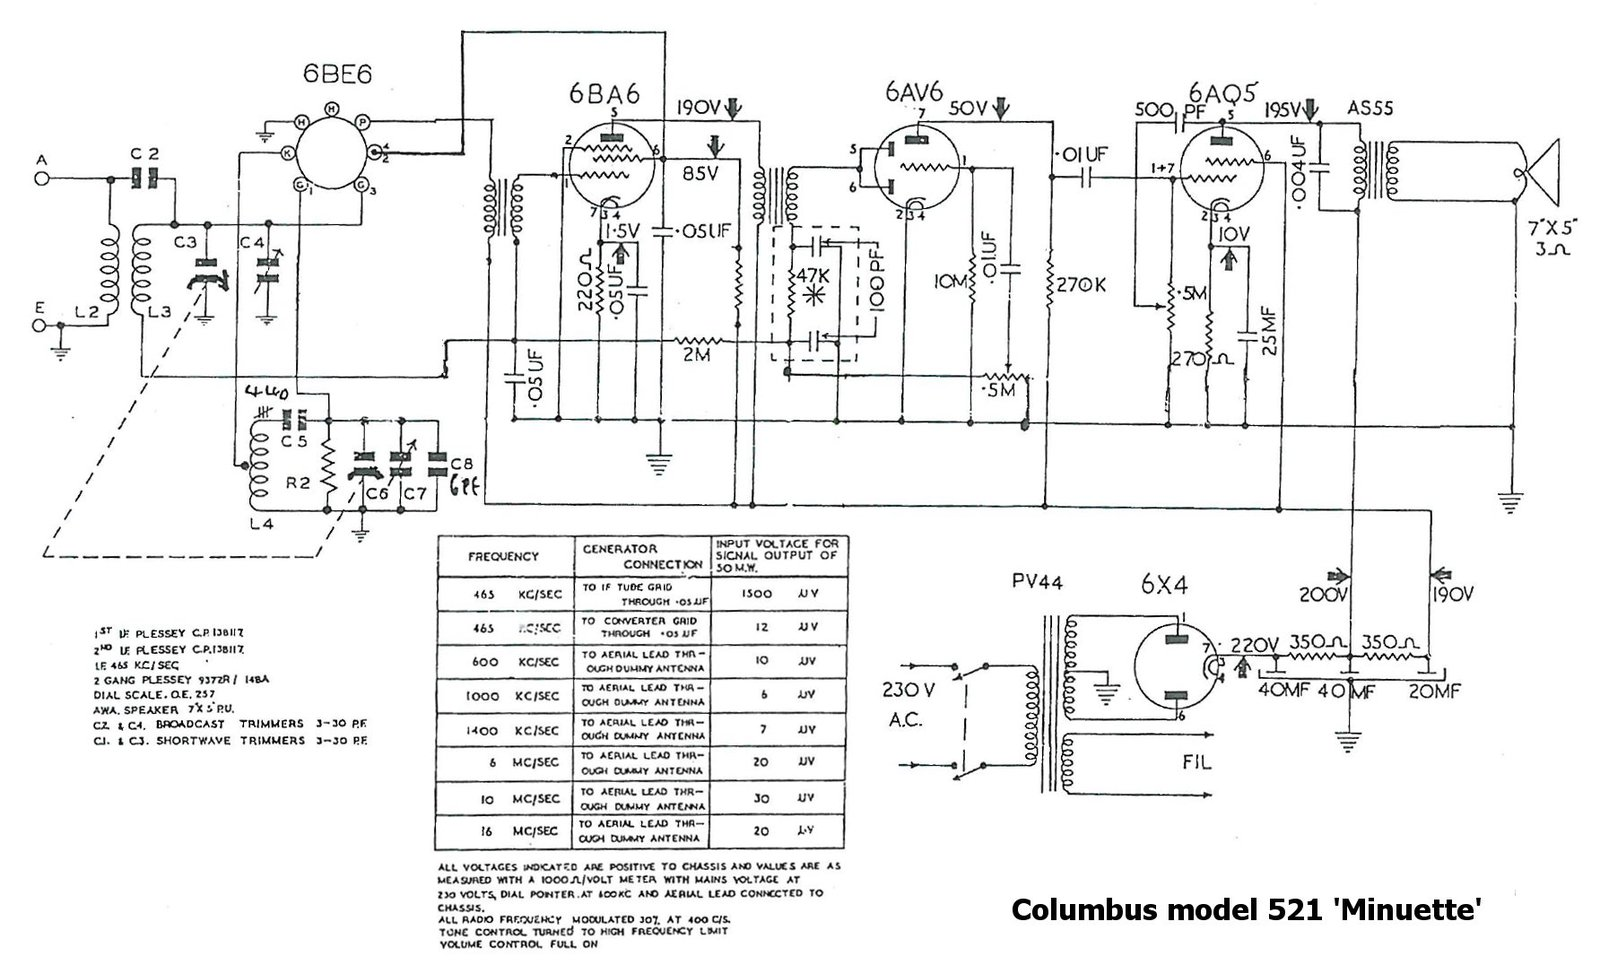 1956 Columbus model 521 schematic